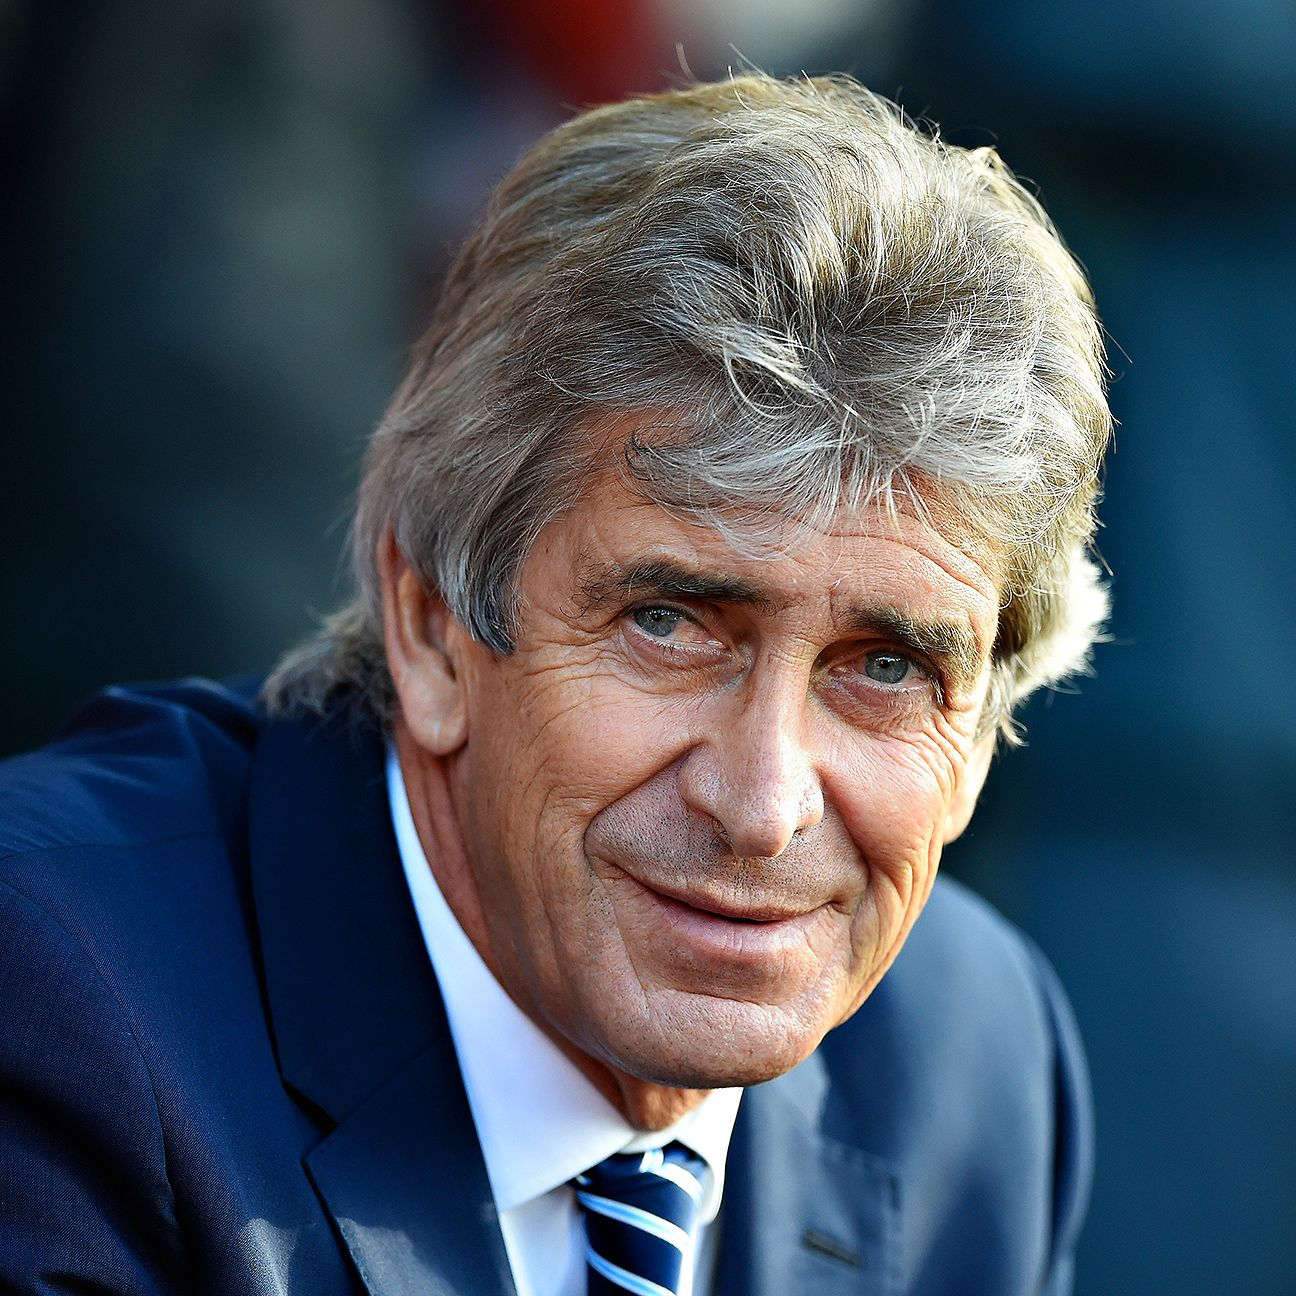 The results of the weekend have seen Manuel Pellegrini's Man City side inch their way back into the title picture.